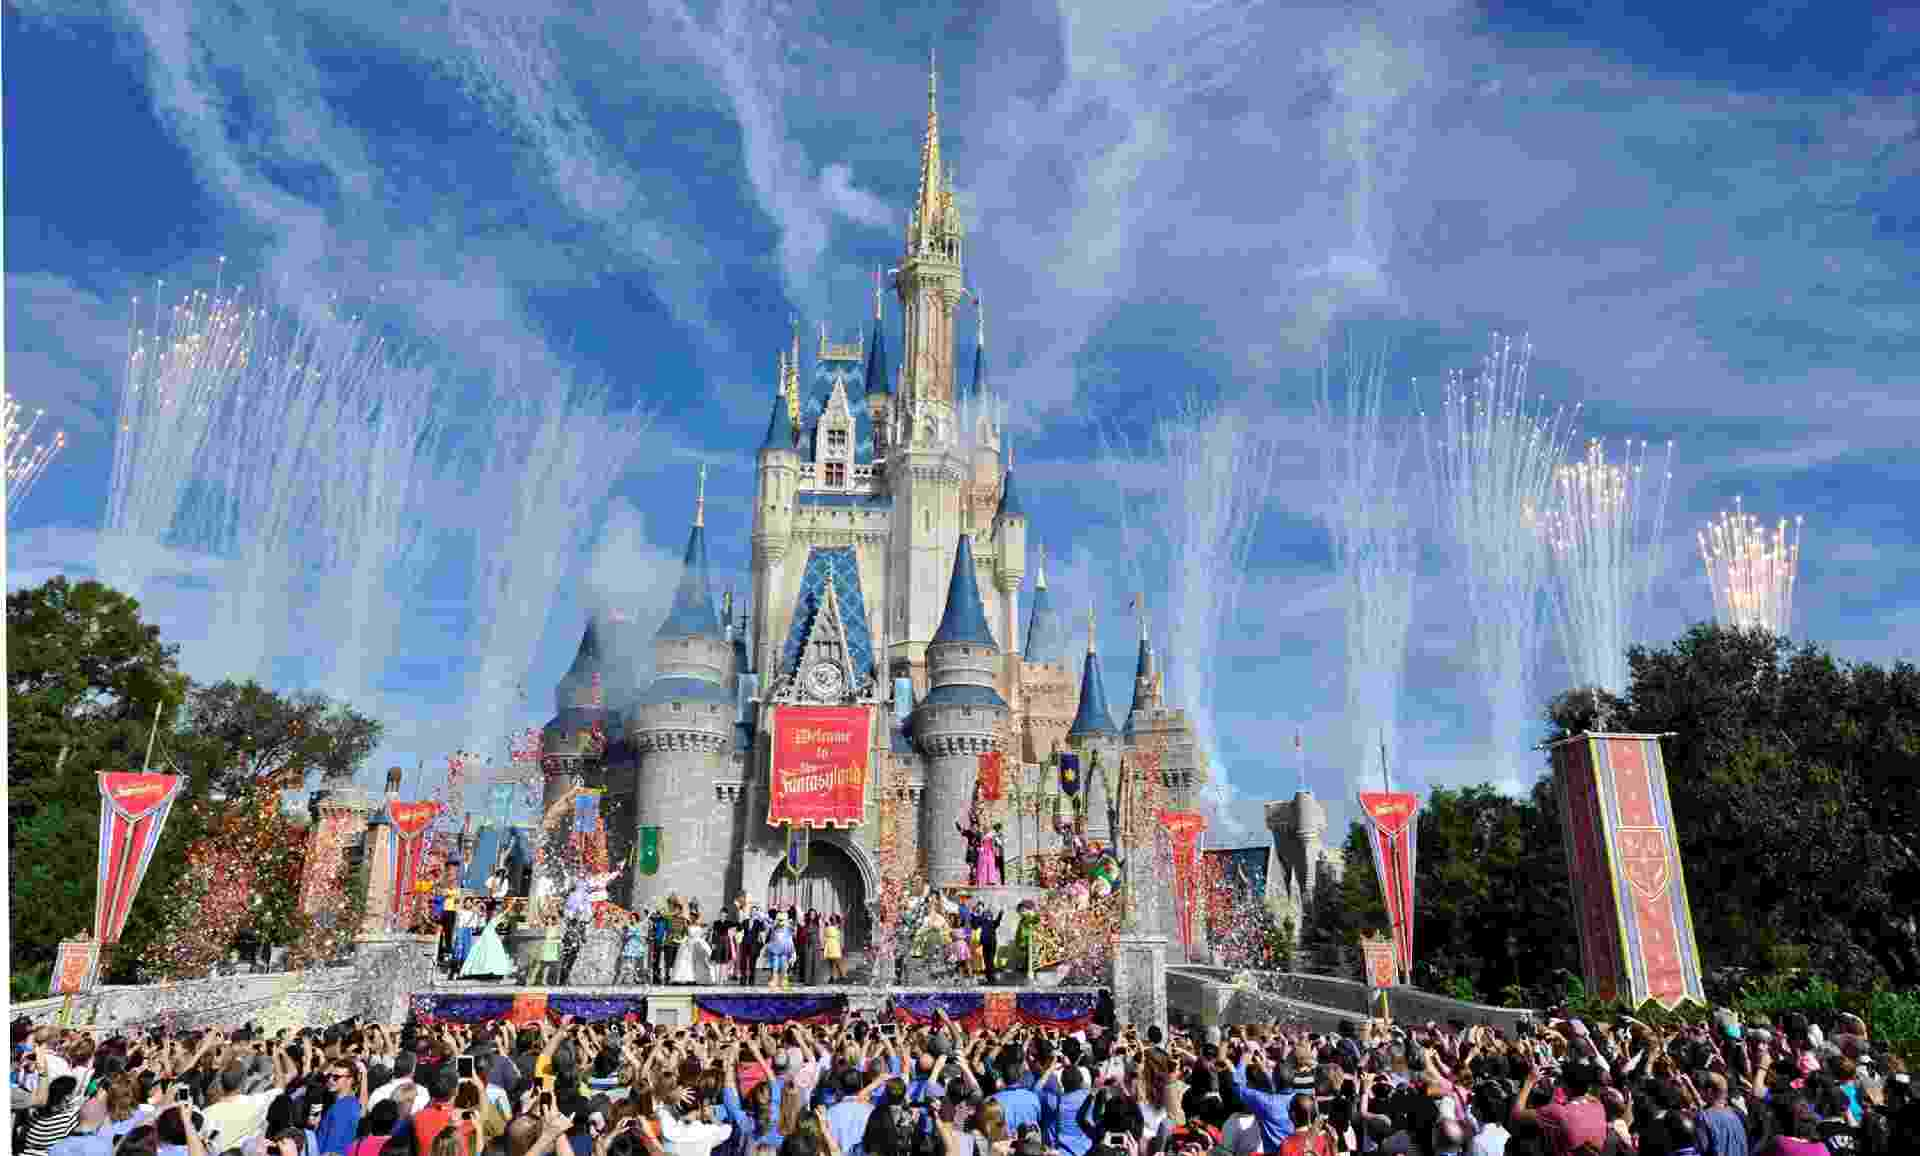 O castelo da Cinderela, no Walt Disney World - Getty Images